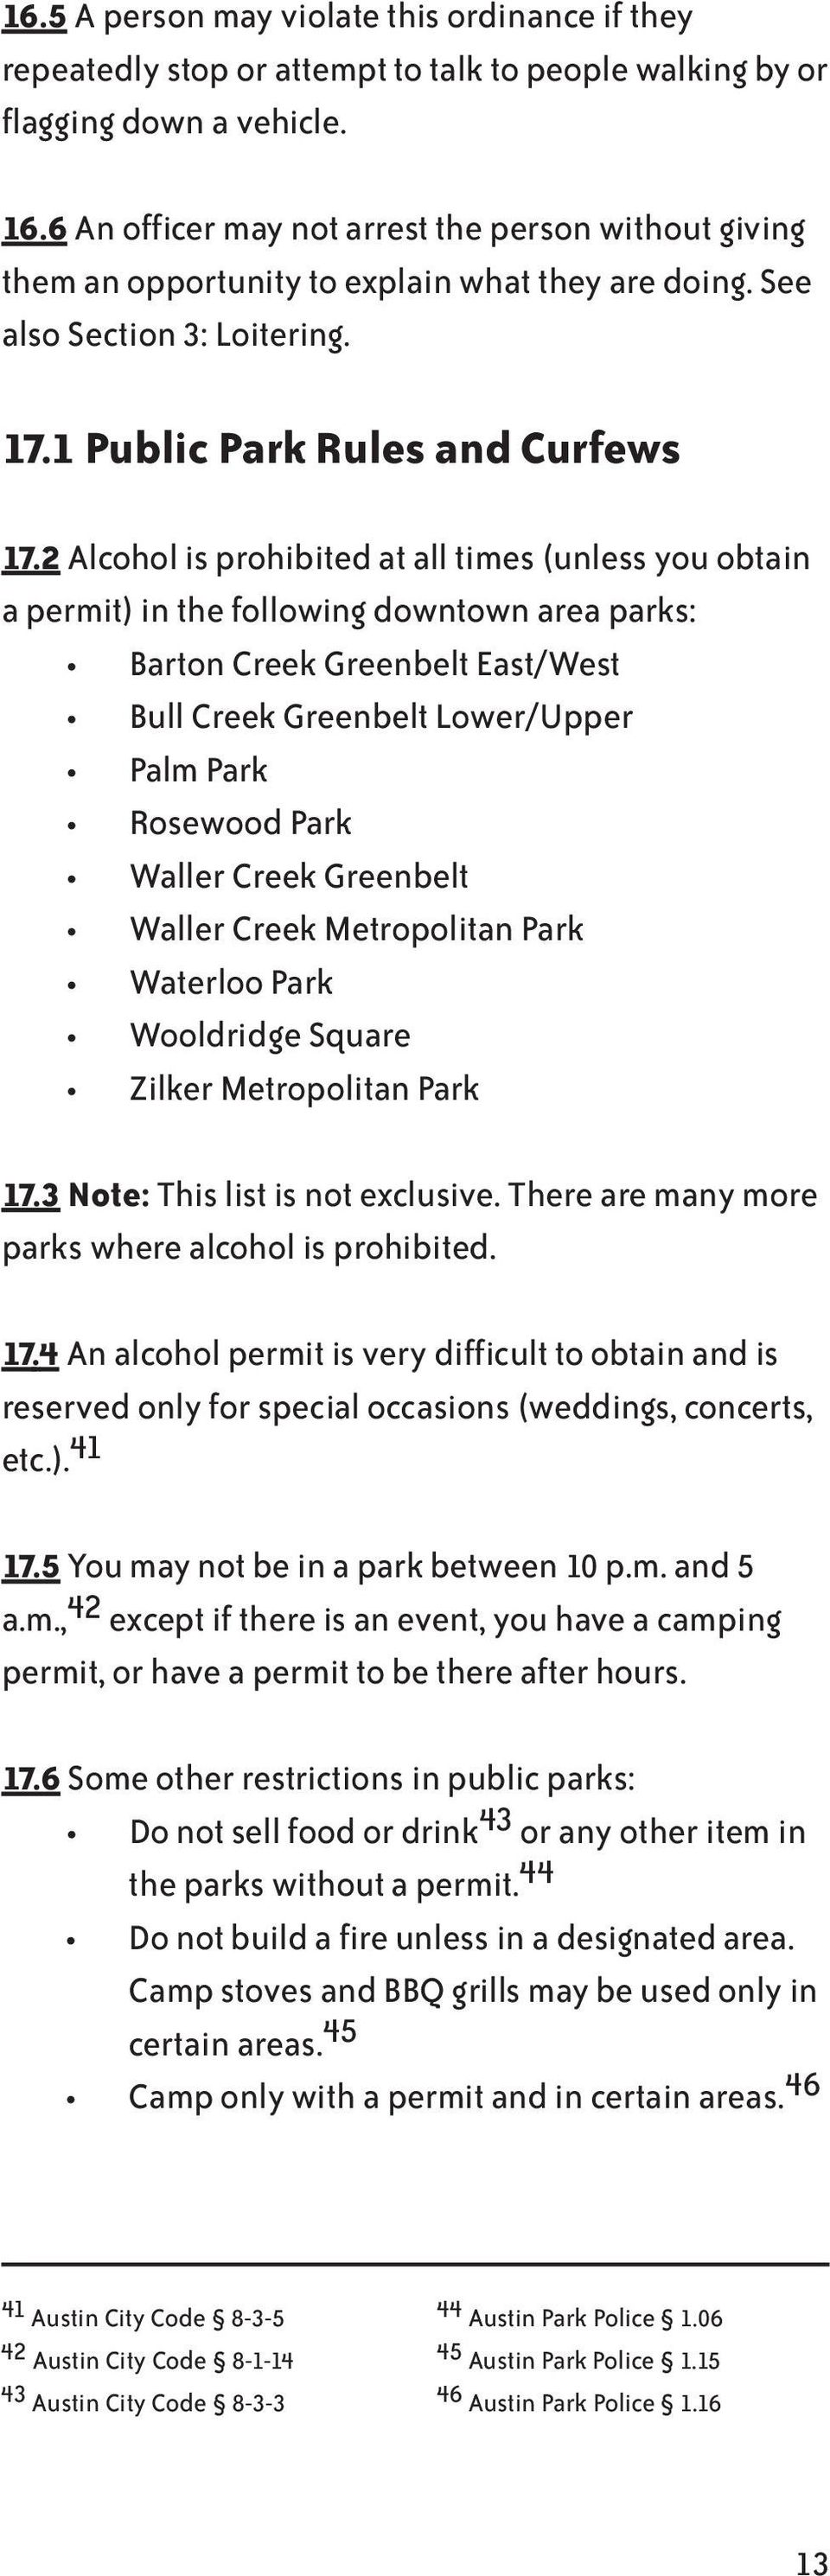 2 Alcohol is prohibited at all times (unless you obtain a permit) in the following downtown area parks: Barton Creek Greenbelt East/West Bull Creek Greenbelt Lower/Upper Palm Park Rosewood Park